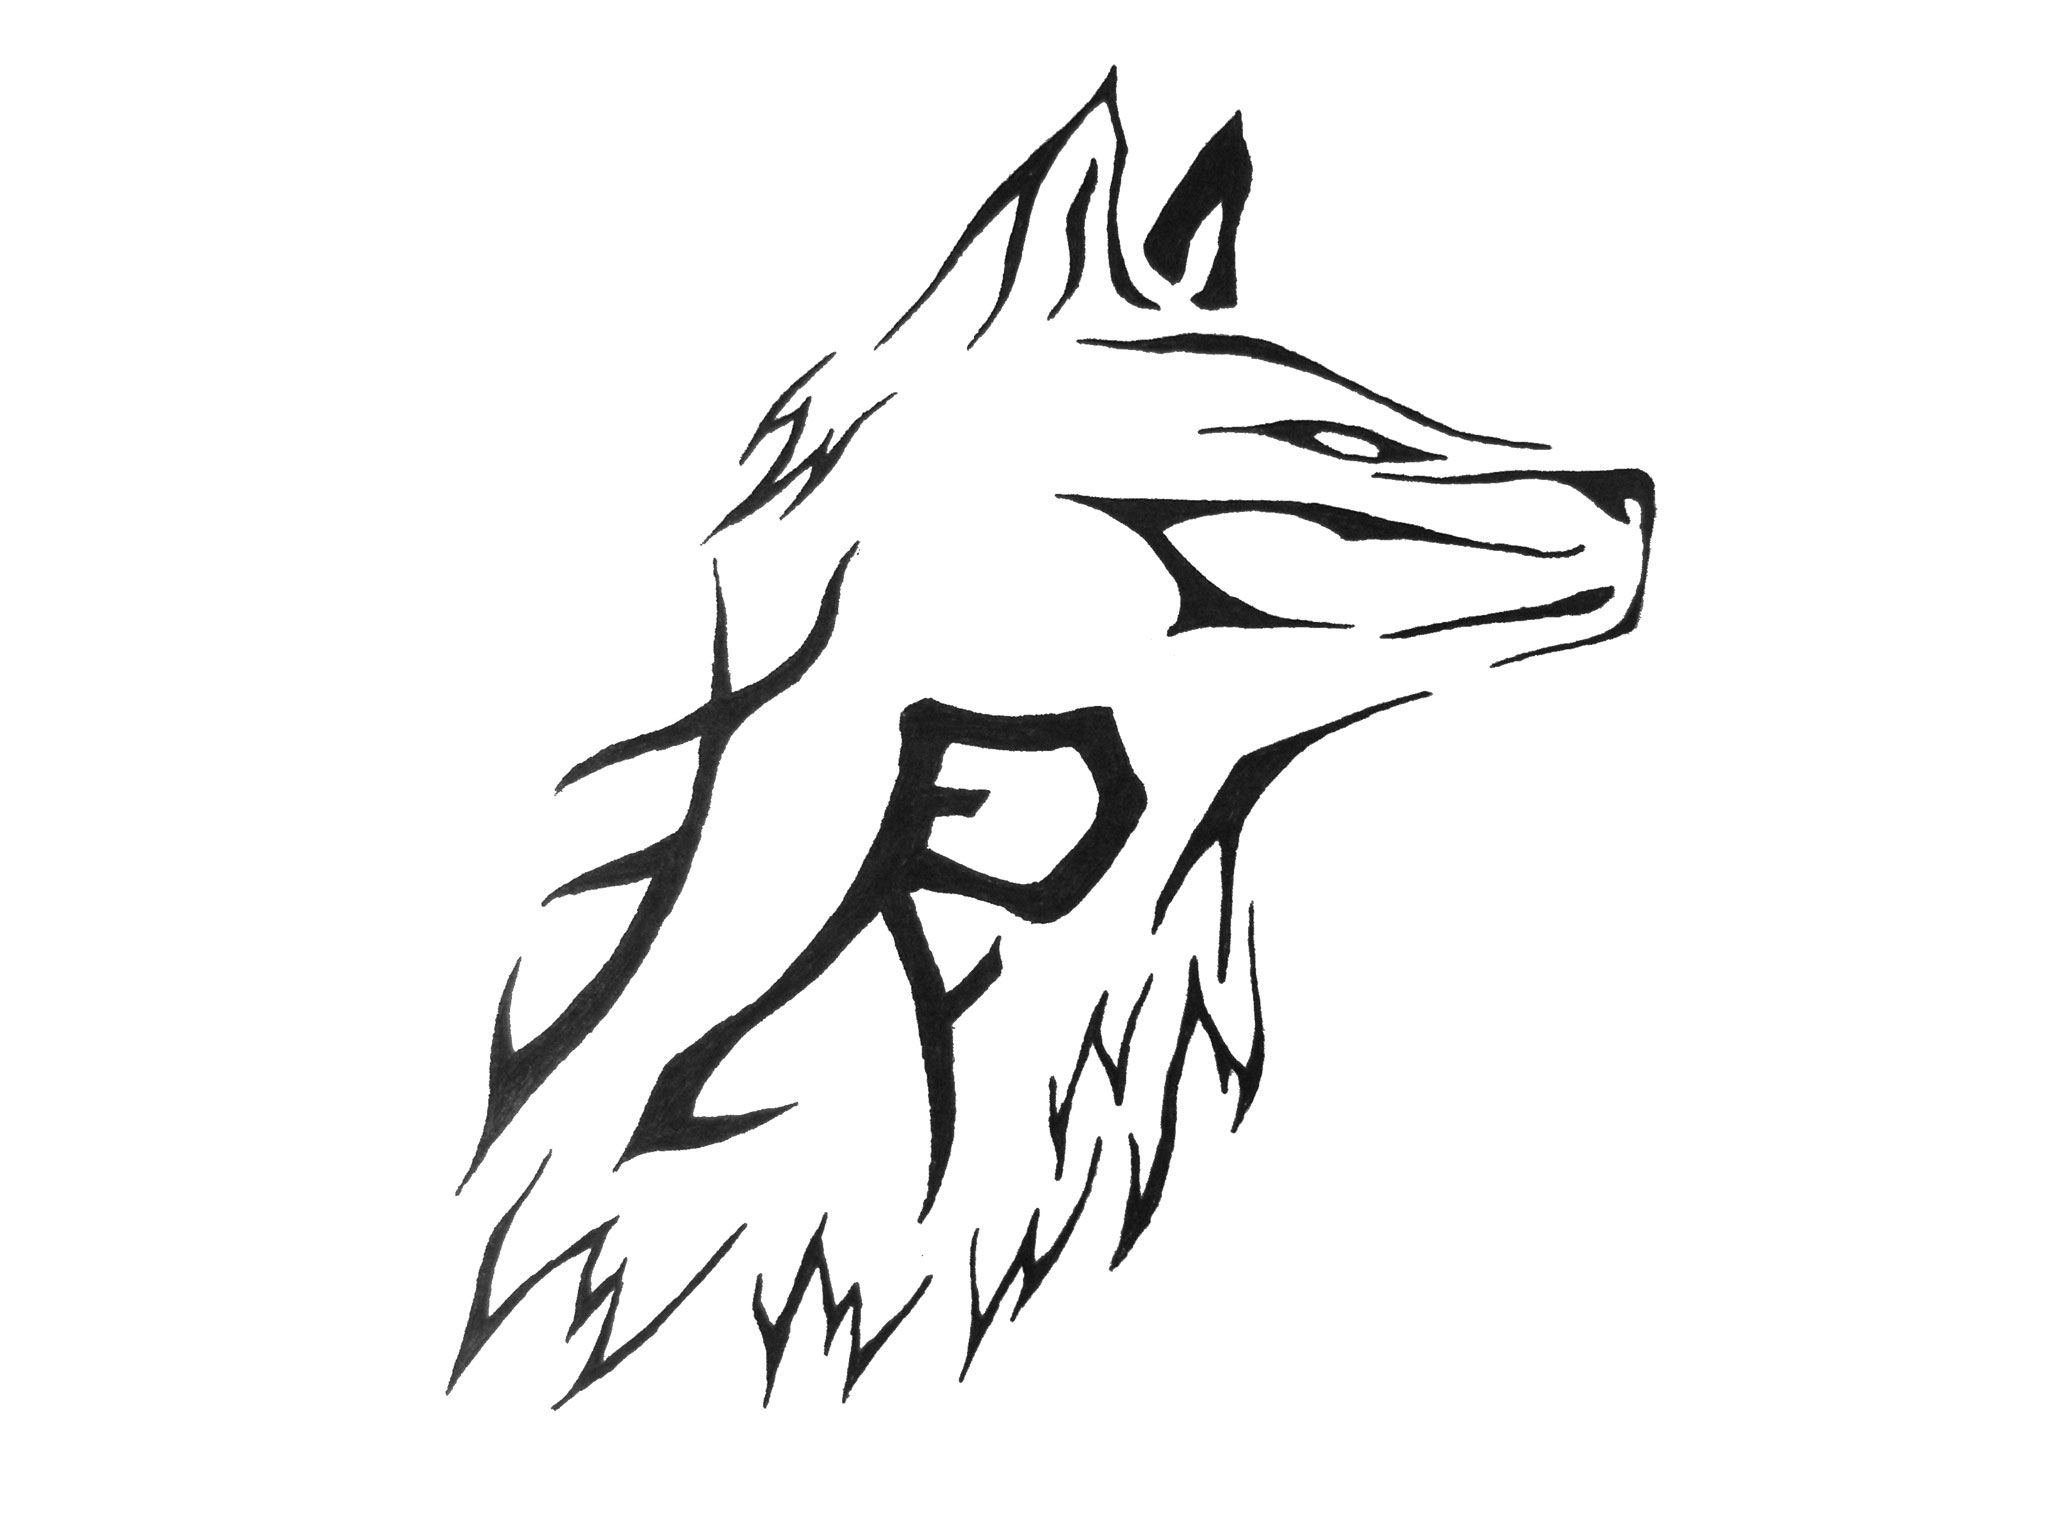 Simple Tribal Wolf Face Tattoo Design | Dövme fikirleri ...